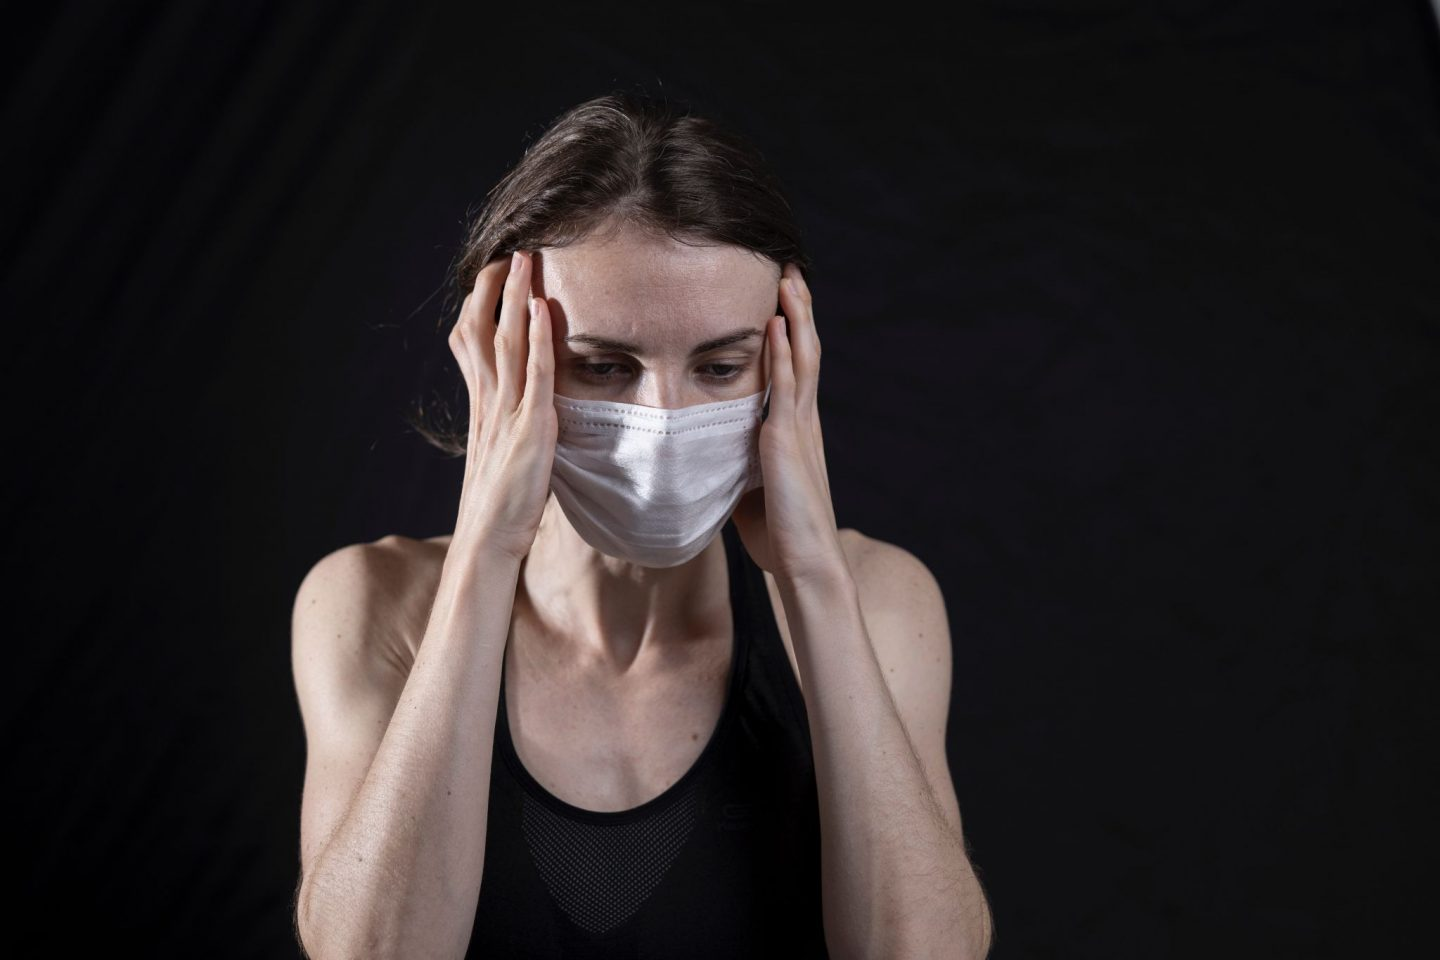 DEALING WITH THE PANDEMIC BLUES – IT'S EASIER THAN YOU THINK